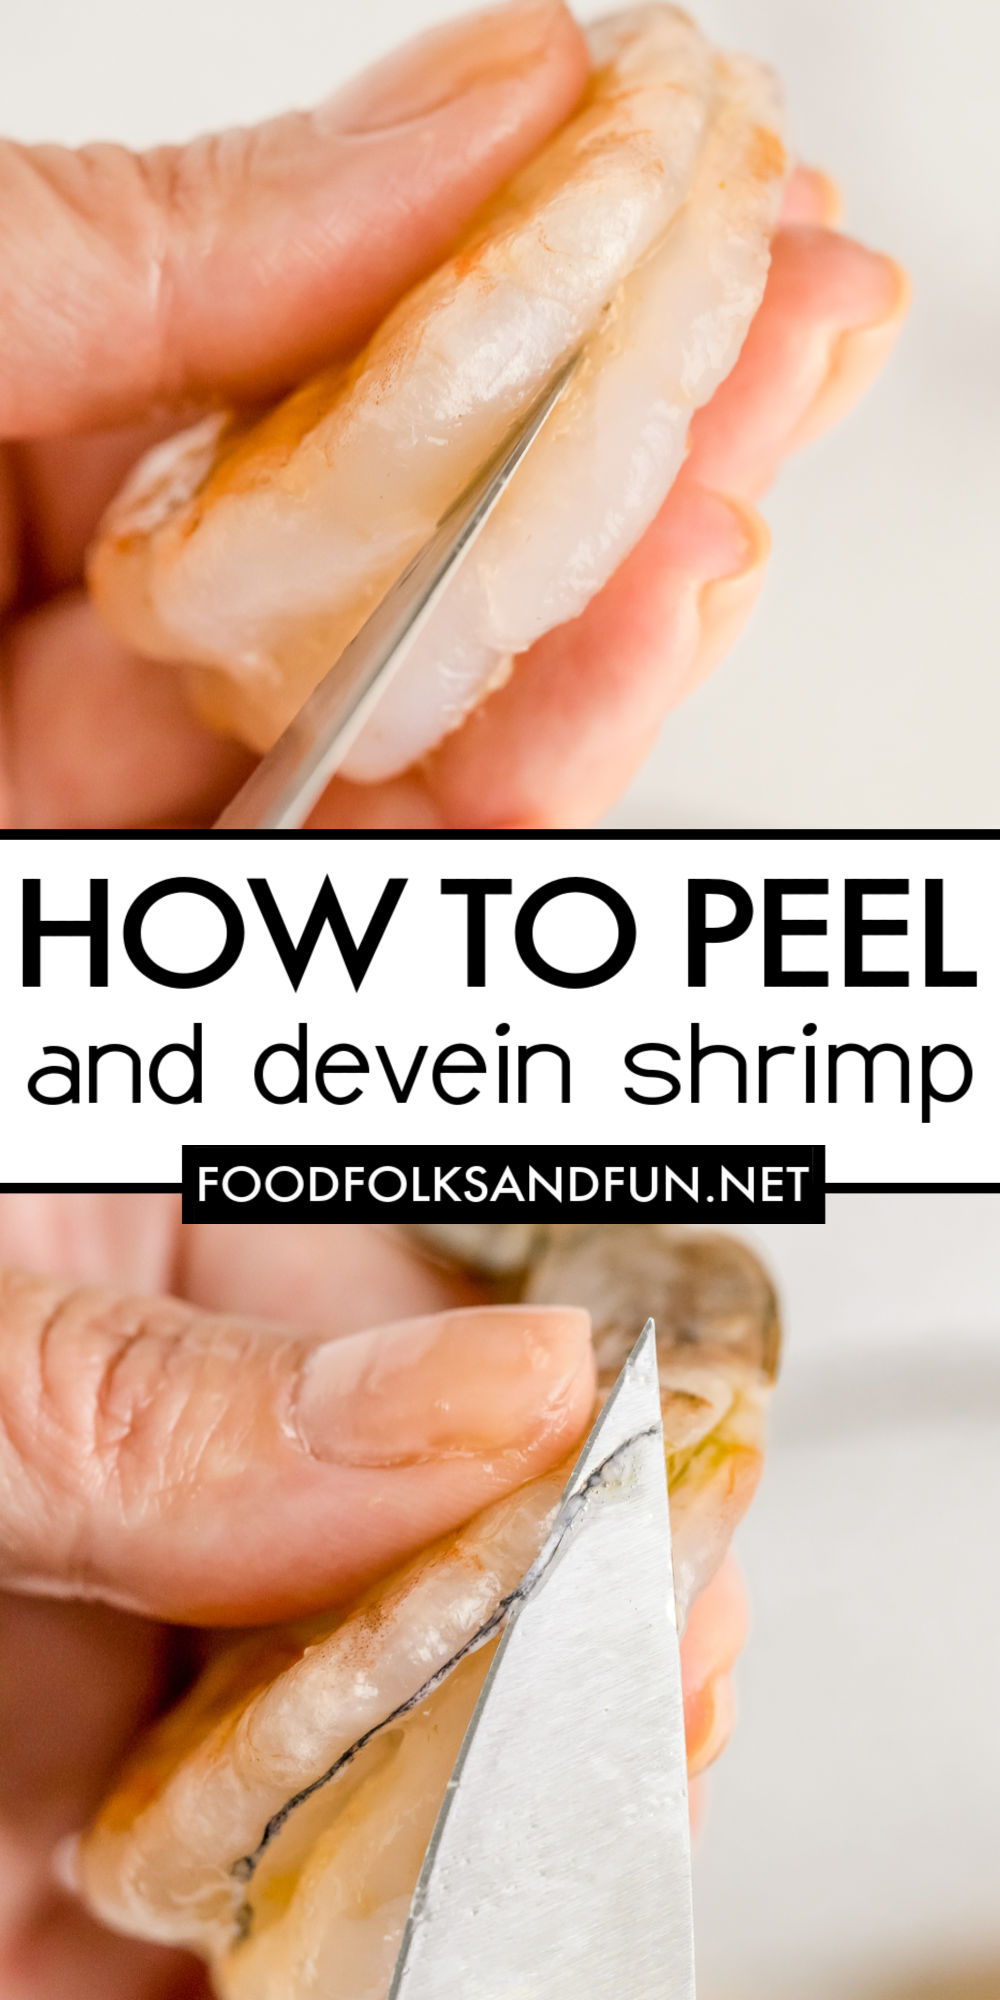 Learn How to Peel and Devein Shrimp in this step-by-step guide. Also included is a video tutorial for even more visuals. via @foodfolksandfun